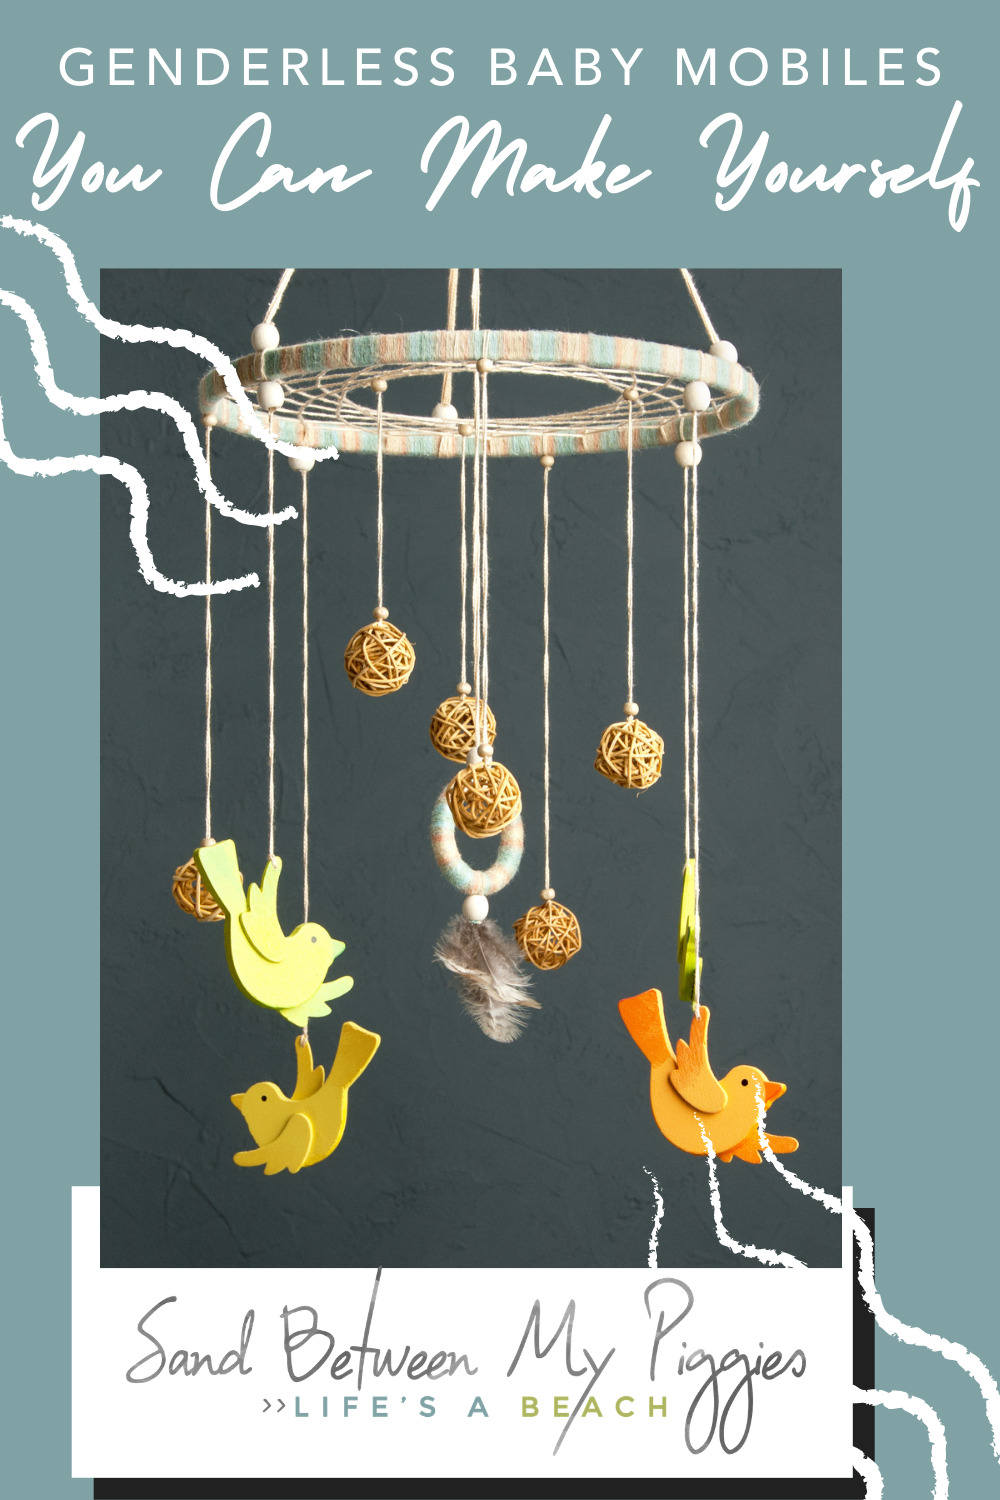 Sandbetweenmypiggies.com is all about being laid back. Carry that lifestyle over to your kids with calming baby mobiles. These amazing mobiles can not only be made at home, but are completely gender neutral!